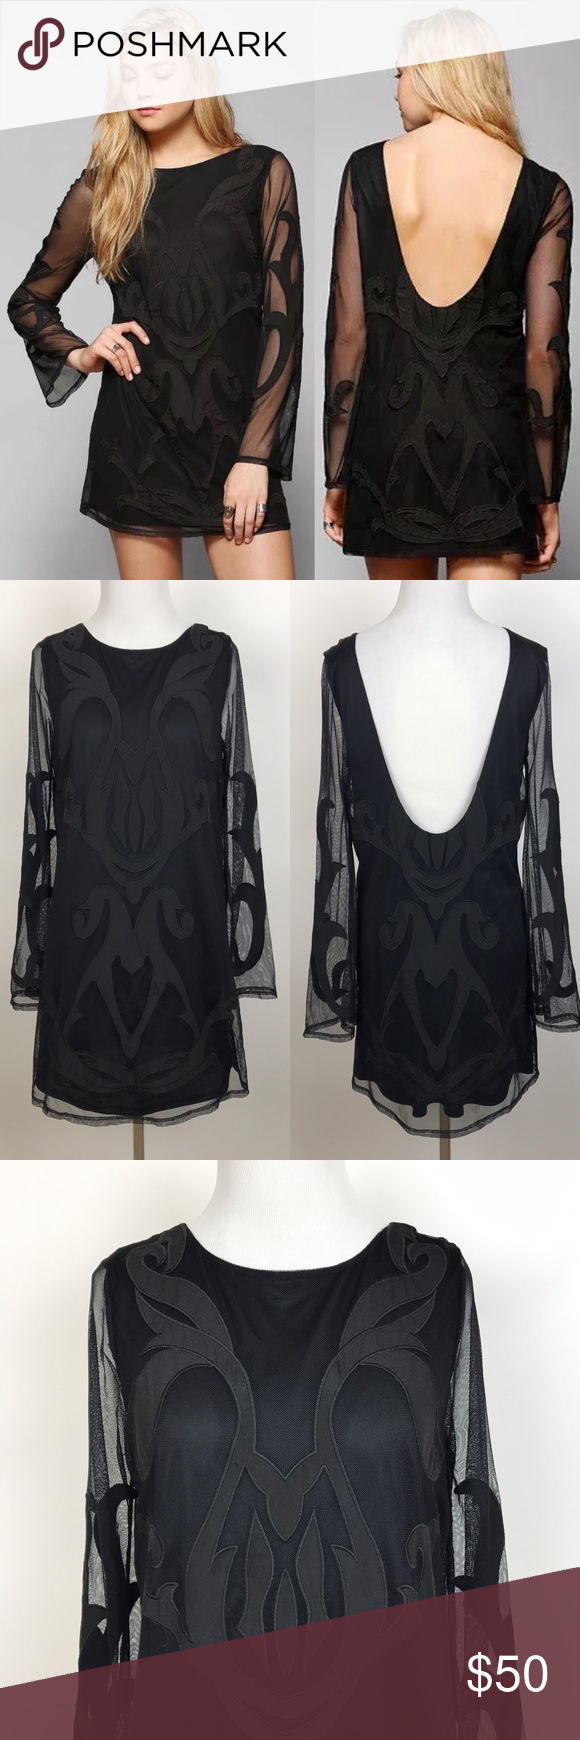 Stone cold fox black mesh embroidered dress nwot ninas by stone